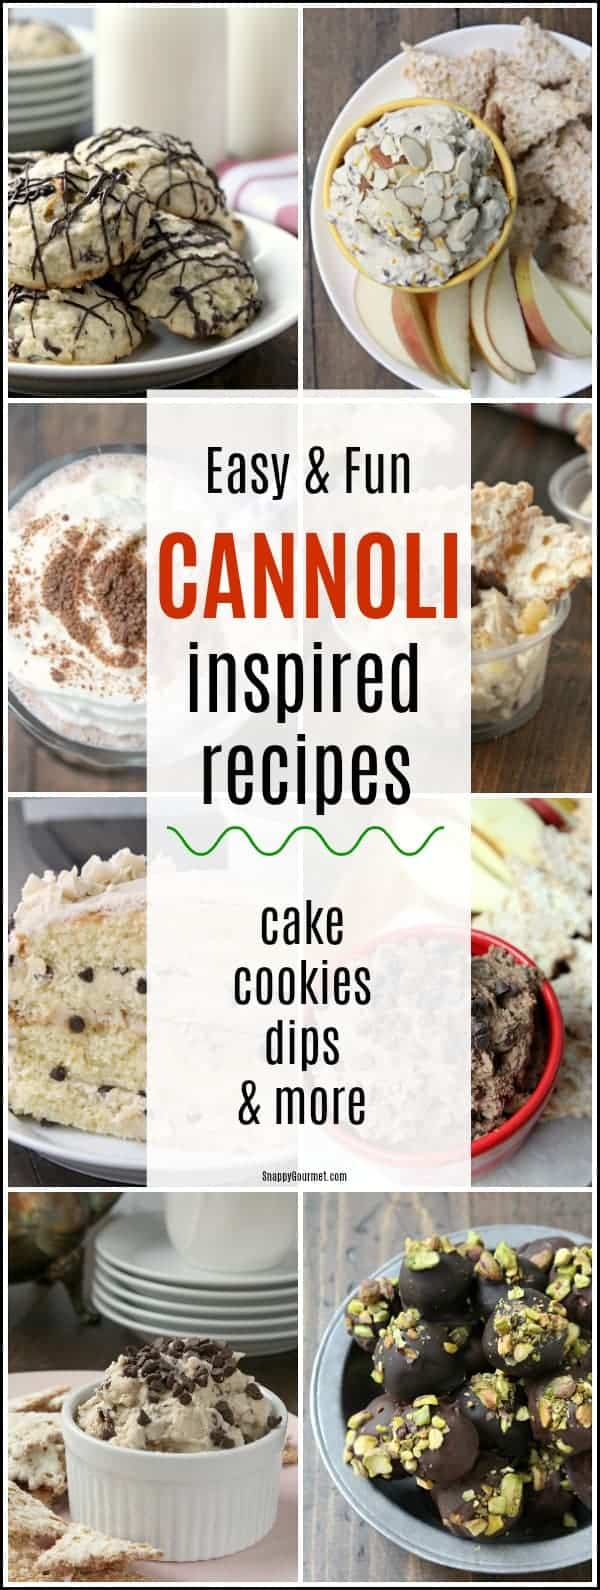 Cannoli Recipes - list of fun cannoli inspired recipes including cake, cookies, dips, candy, and more